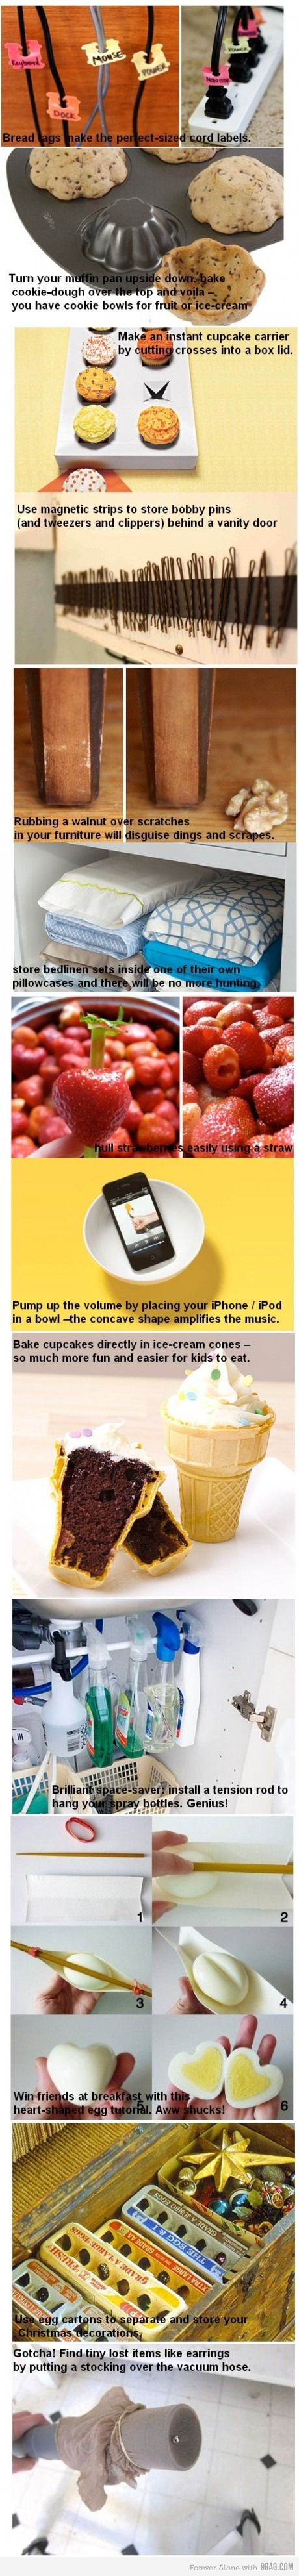 Clever ideas to make life easier